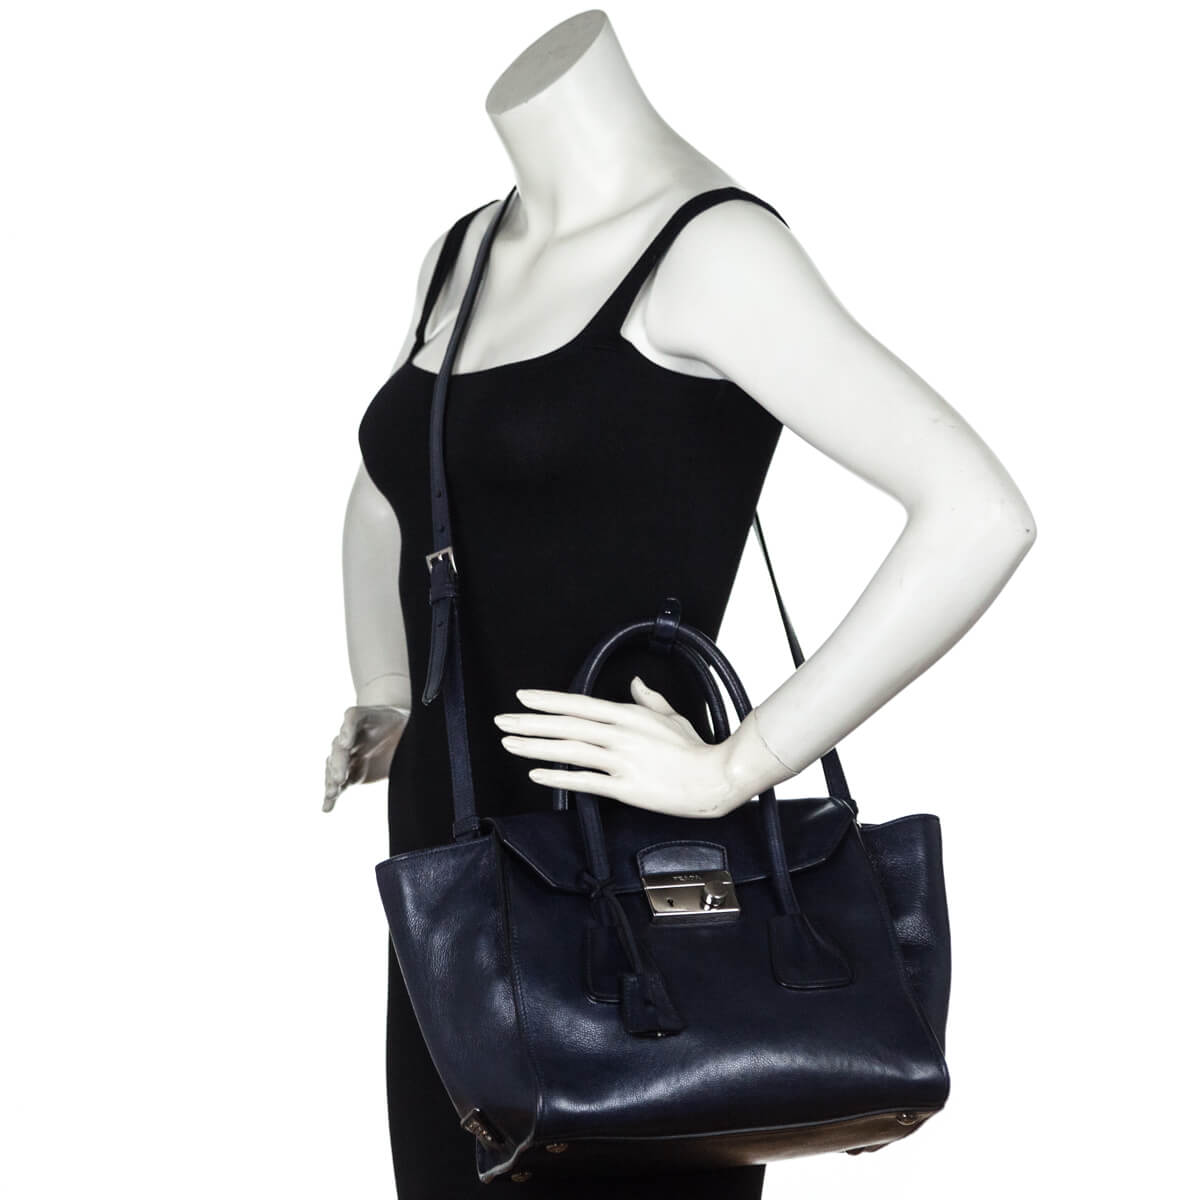 4dc9263a2373 ... Prada Navy Daino Twin-Pocket Flap Bag - LOVE that BAG - Preowned  Authentic Designer